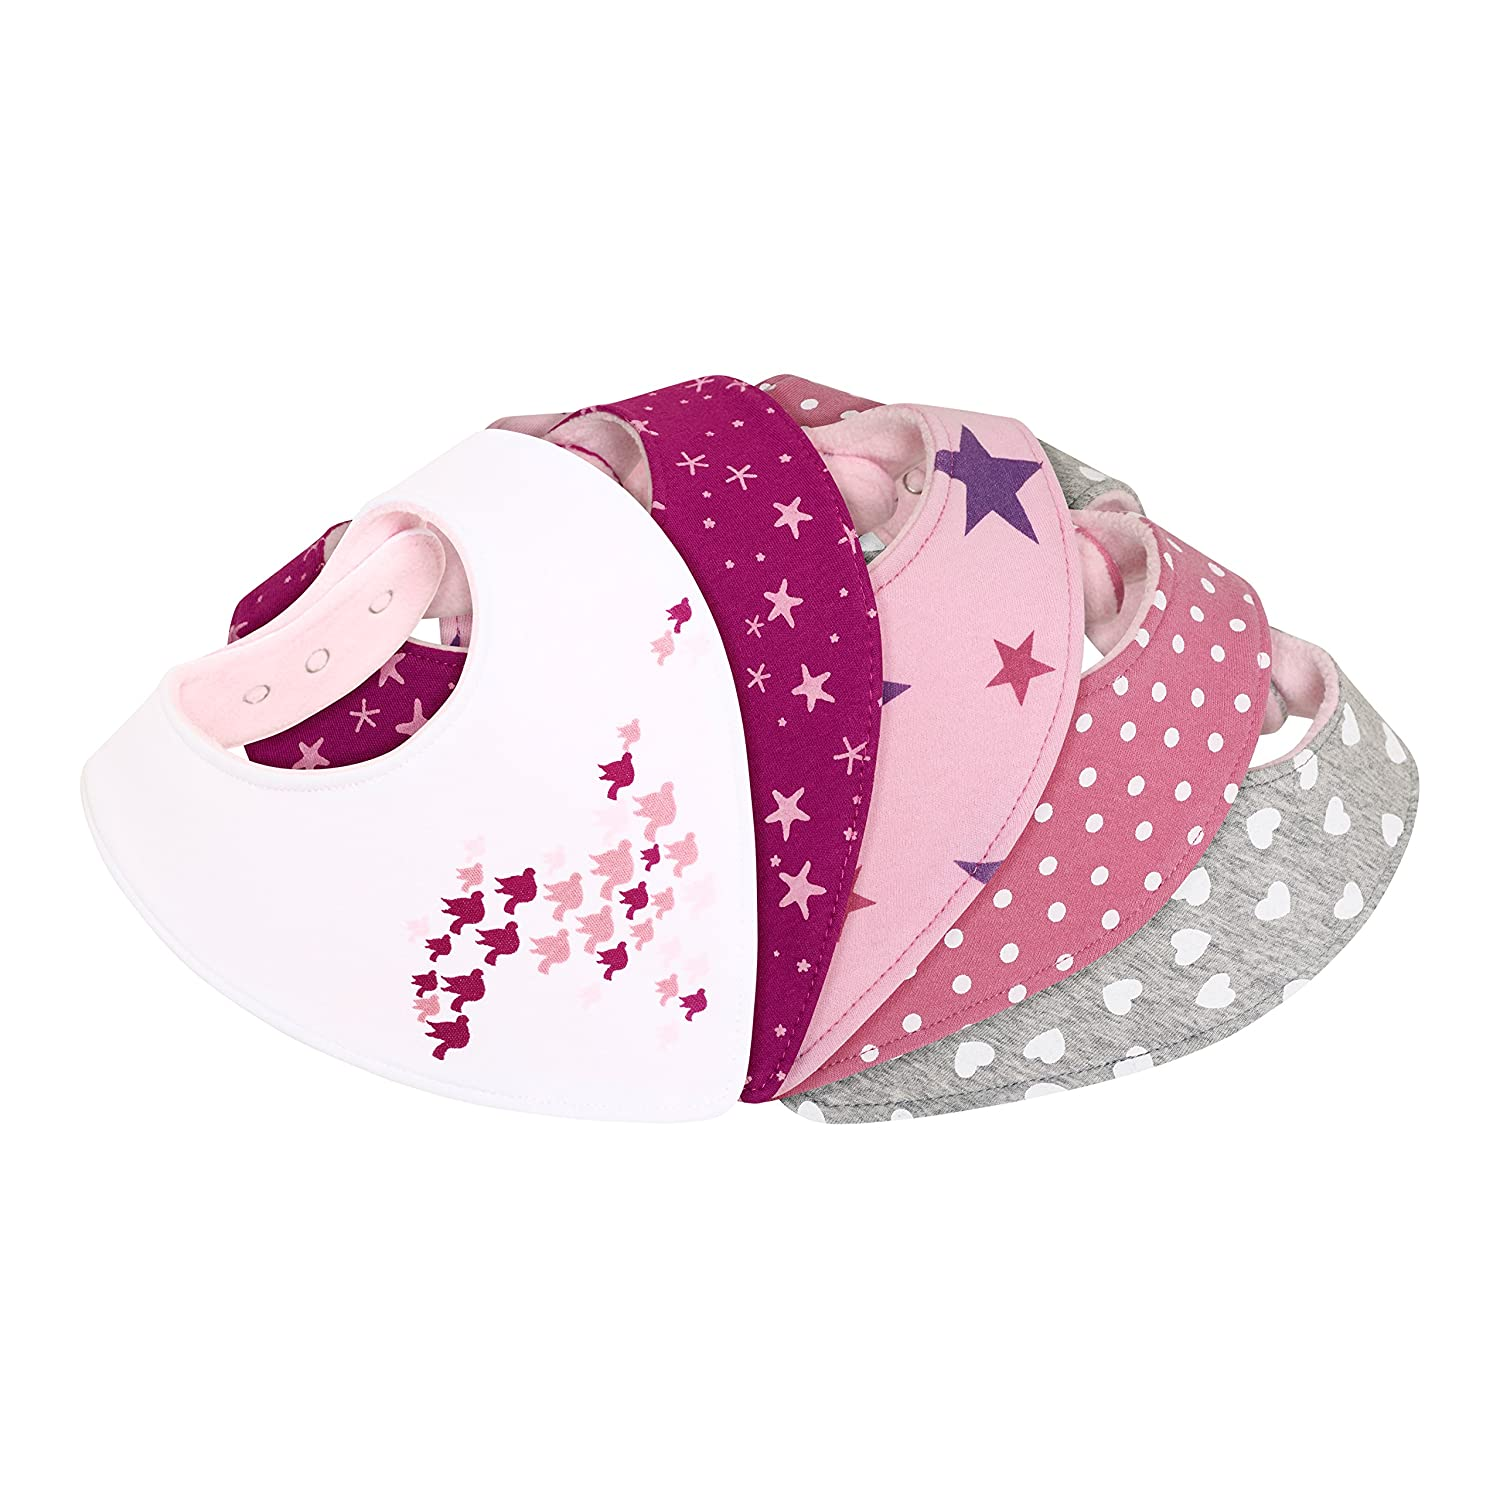 Dribble Baby Bandana Bibs Girl-s - Highly Absorbent and Soft - Cute New Gift-s Lamoku GmbH